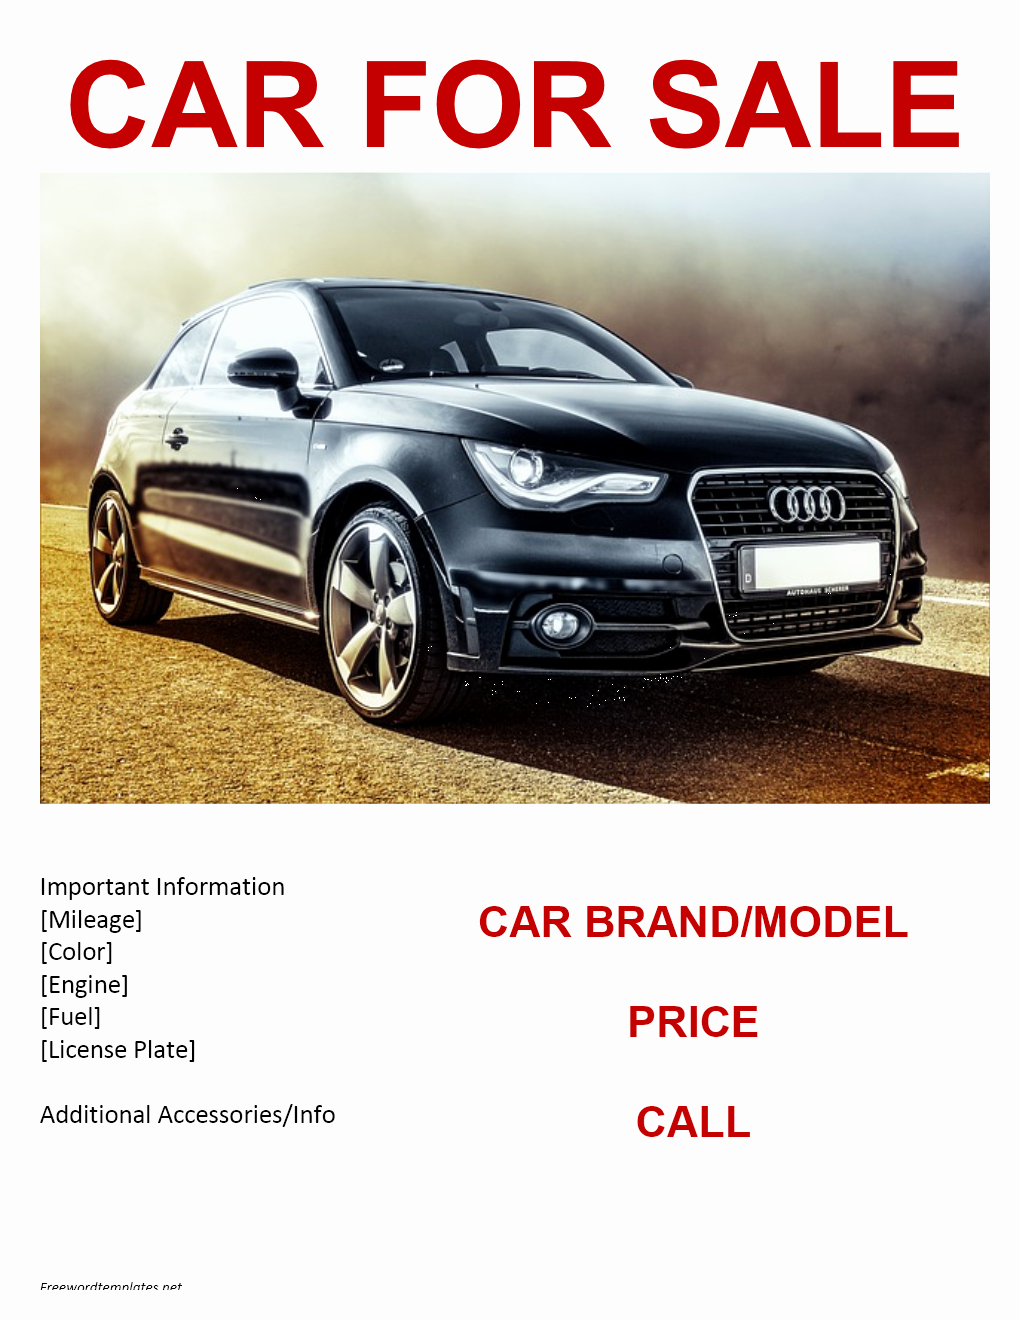 Car for Sale Template Inspirational Car for Sale Flyer Template